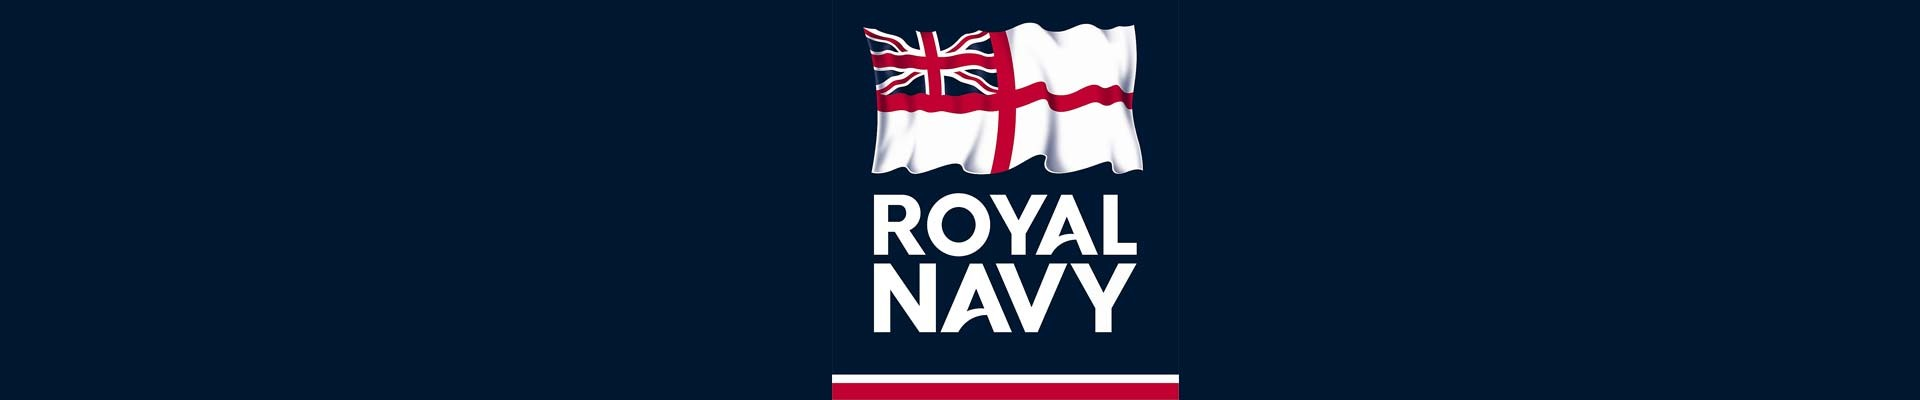 Royal Navy - Conveyancing Solicitors